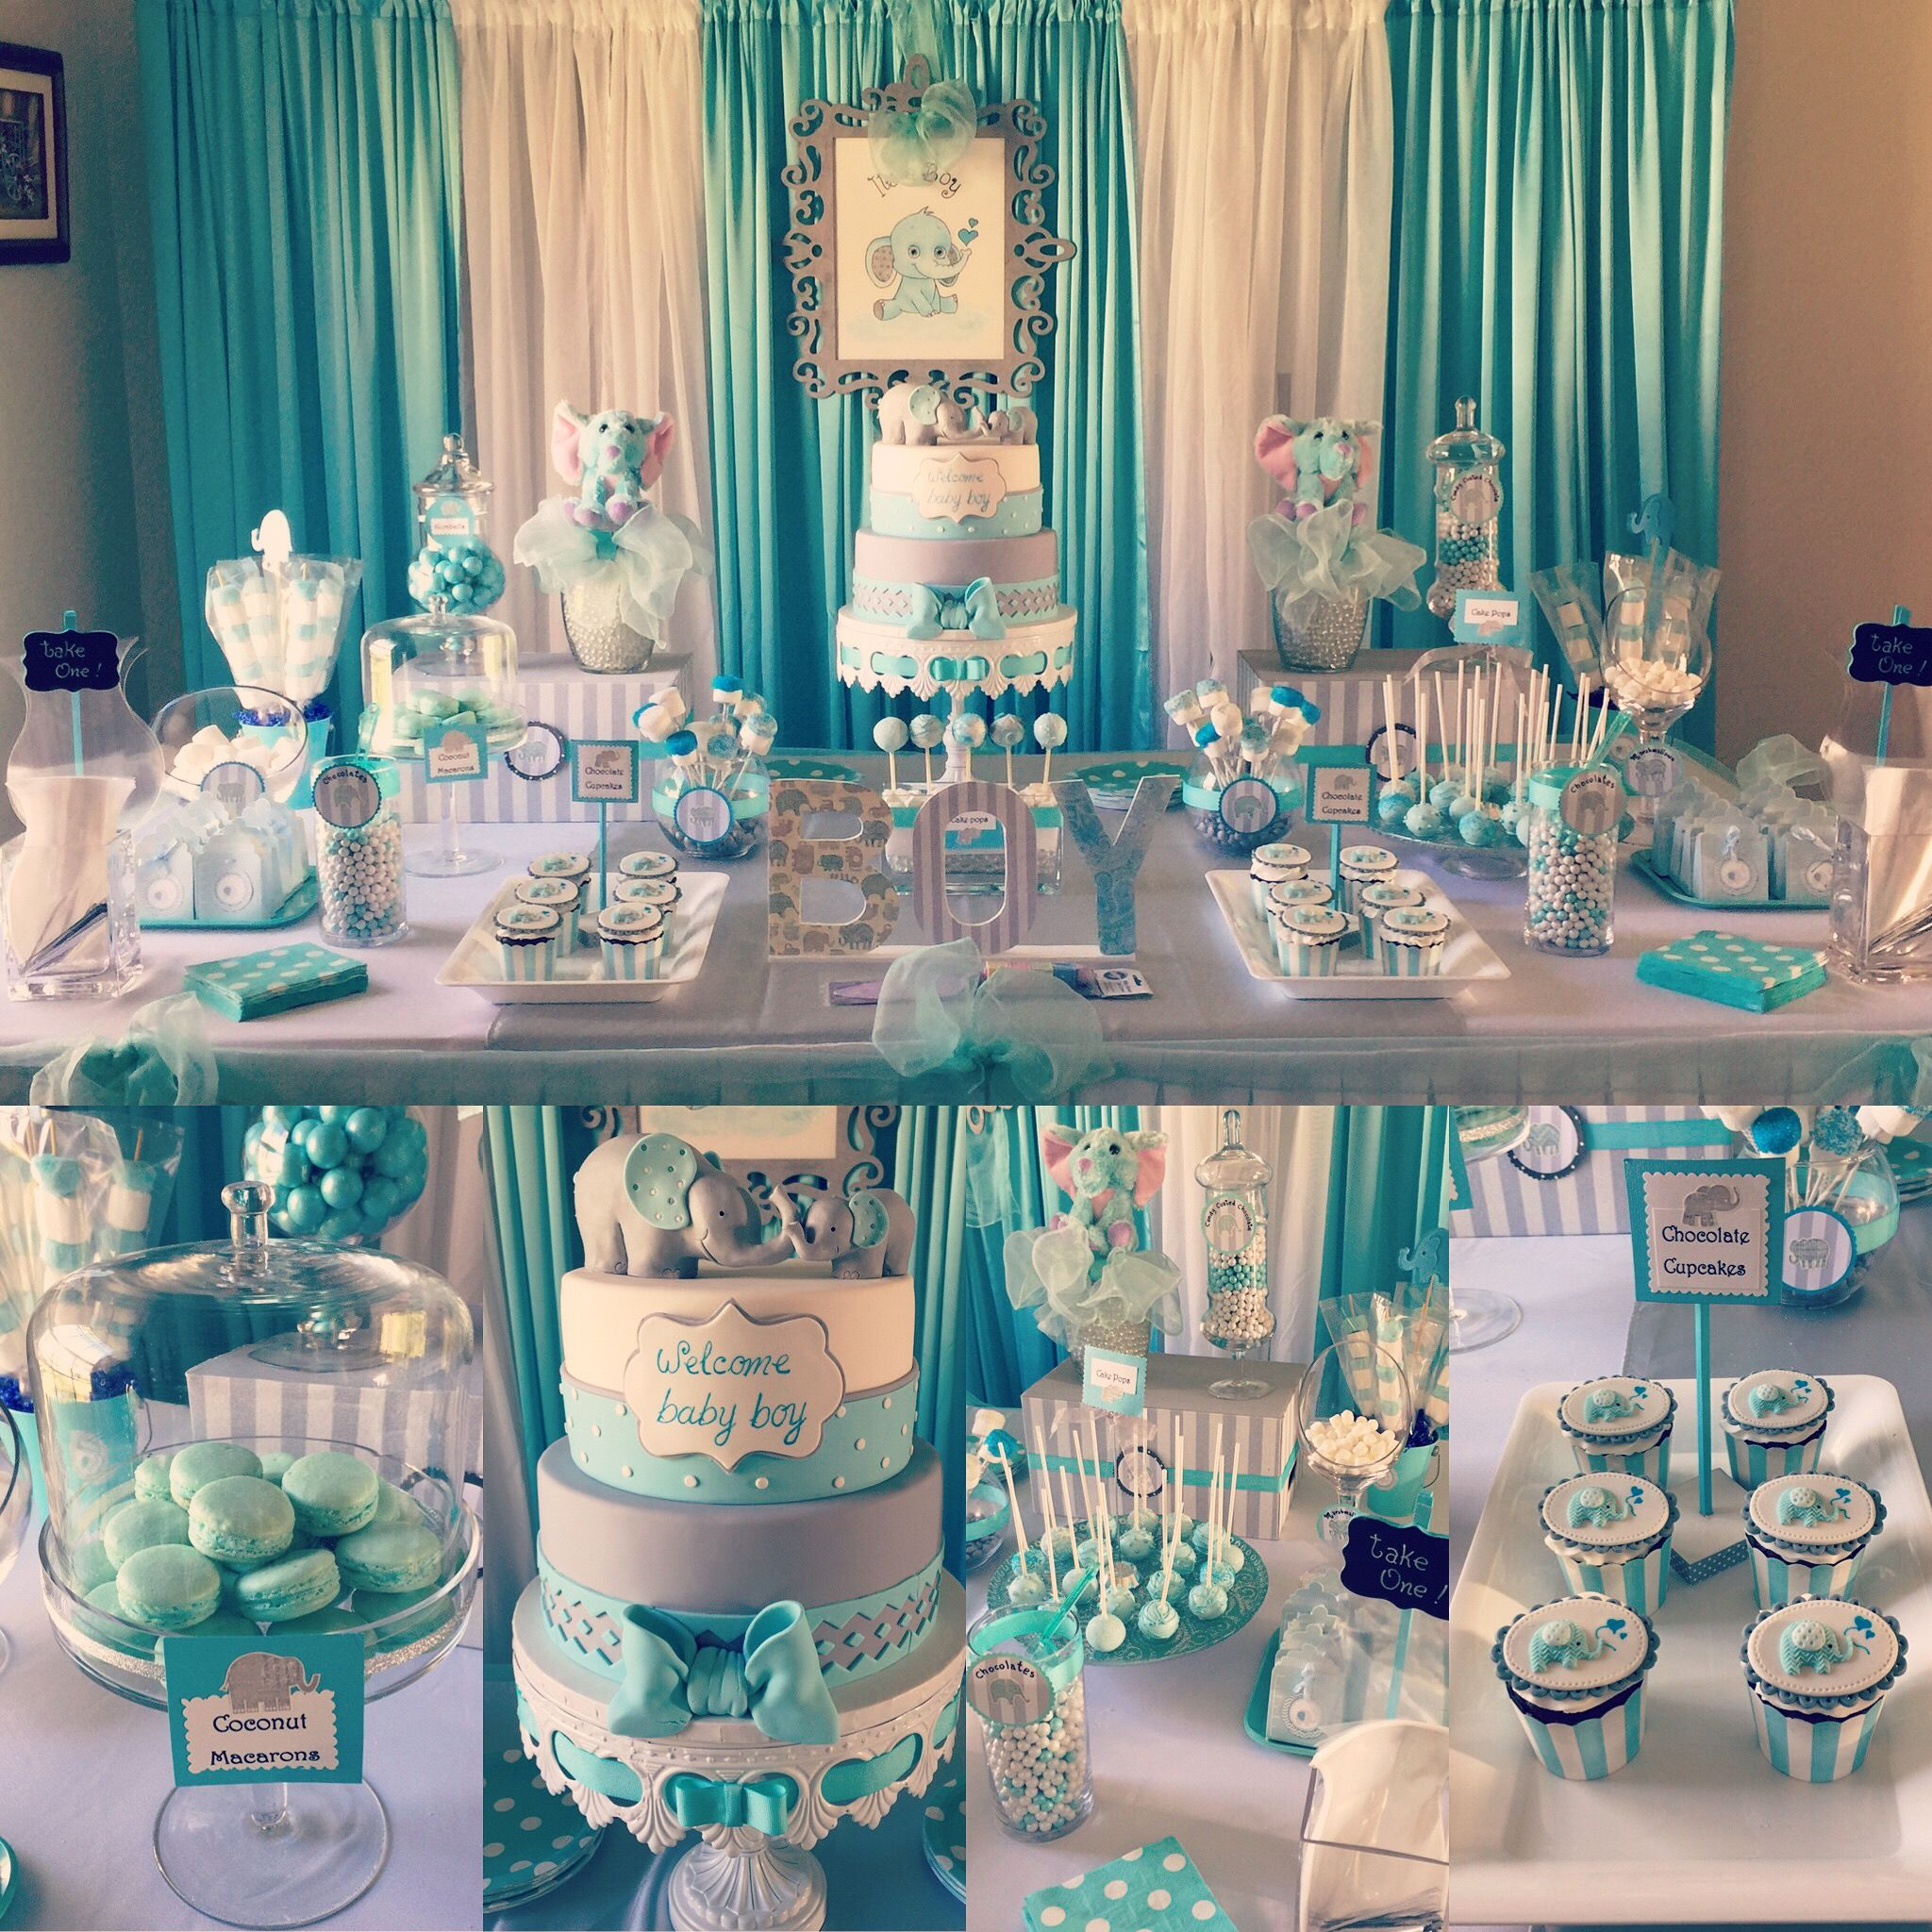 Best Boy Baby Shower Elephant Theme Party Decor Pinterest This Month